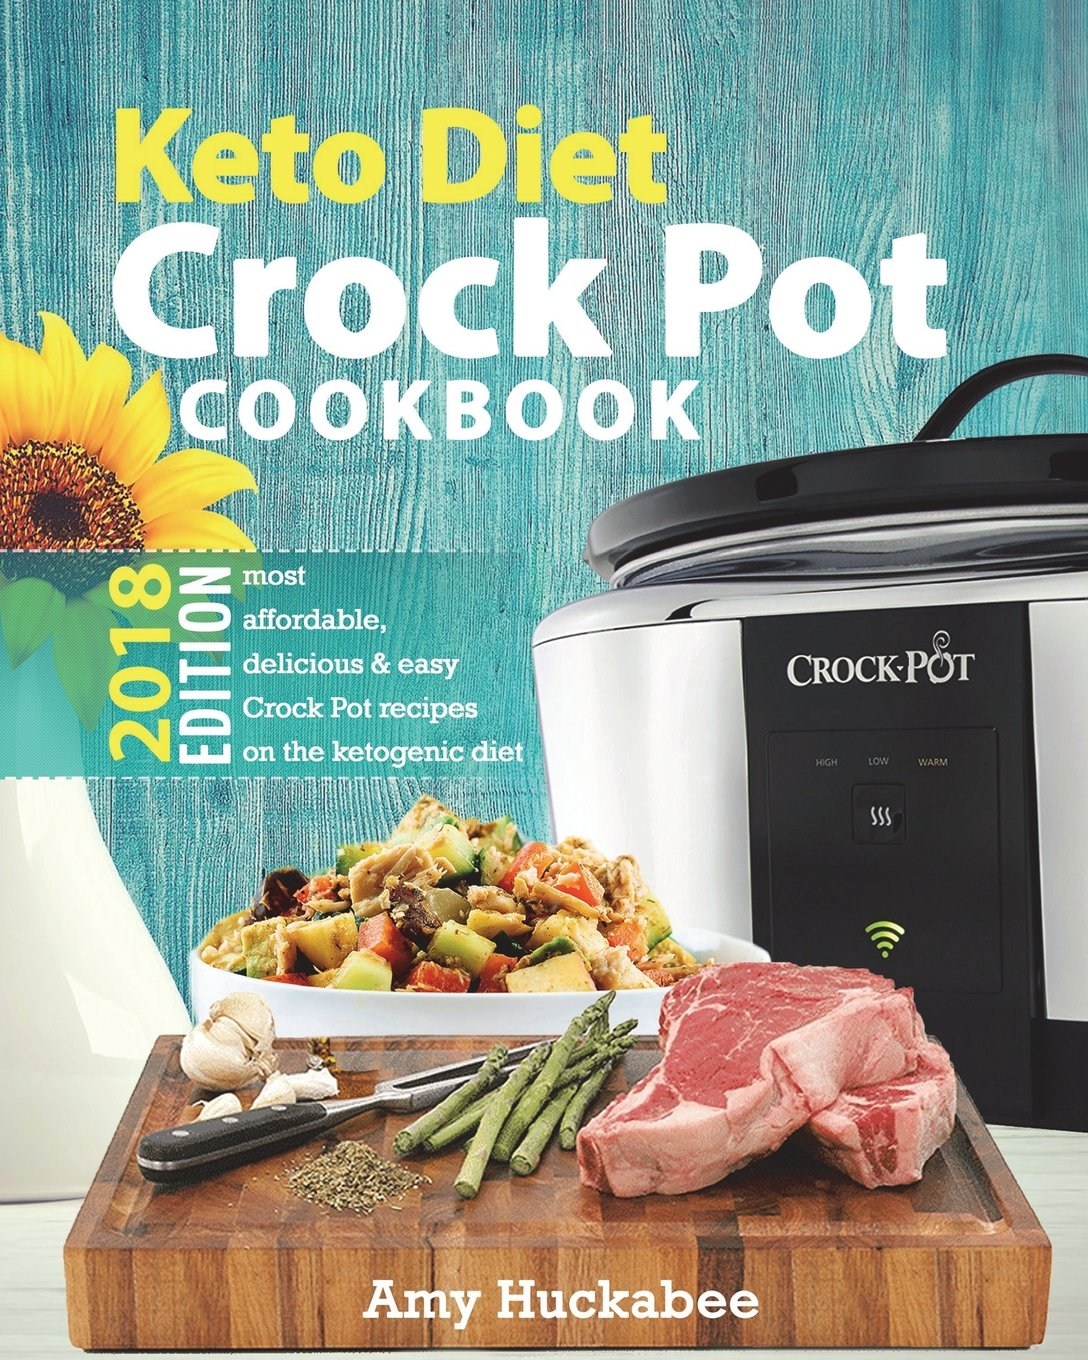 Keto Diet Crock Pot Cookbook 2018: Most Affordable, Quick & Easy Slow Cooker Recipes for Fast & Healthy Weight Loss on the Ketogenic Diet PDF